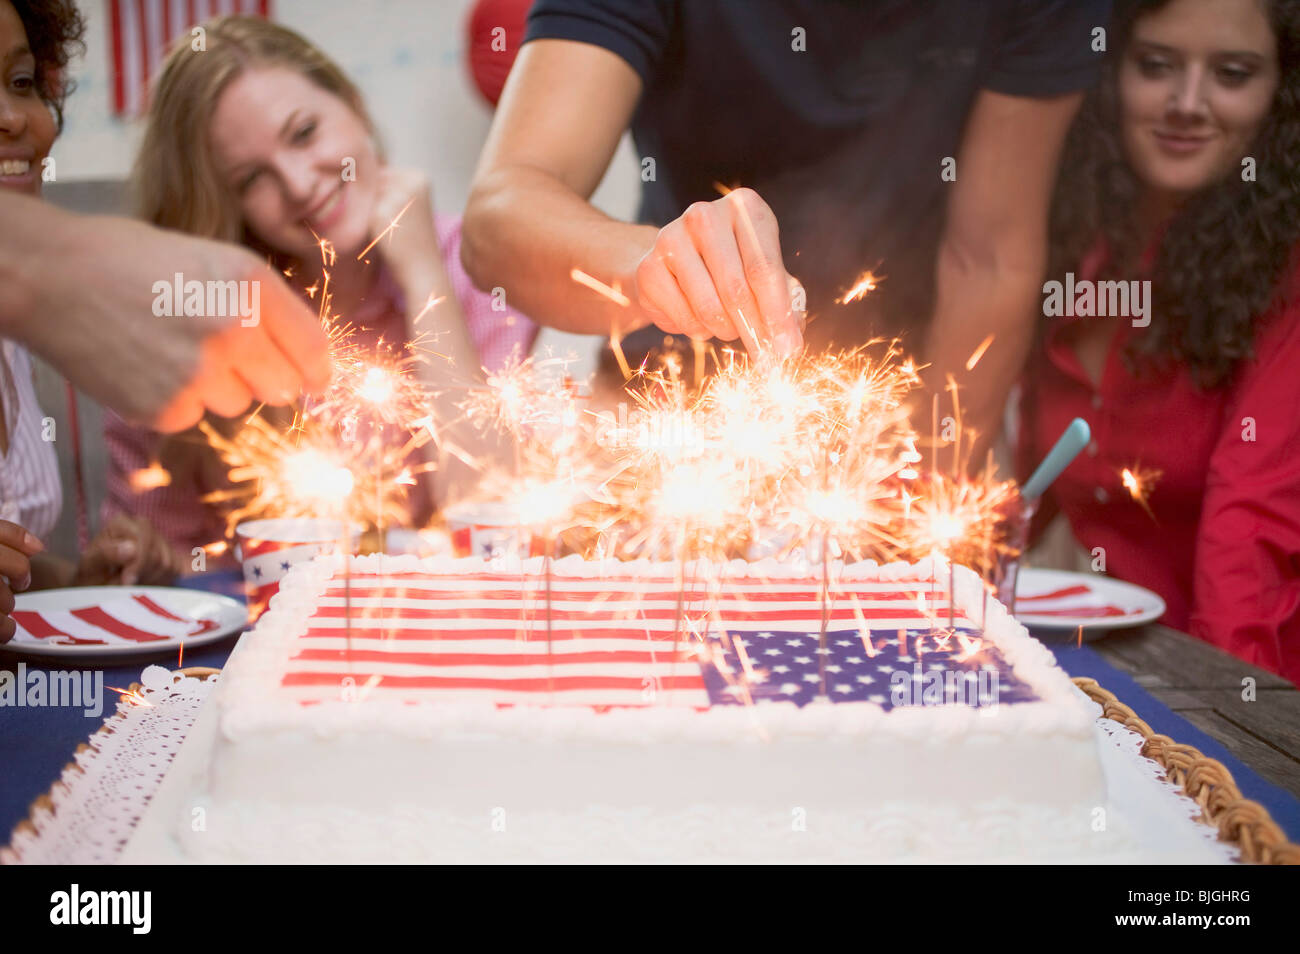 Hands lighting sparklers on a cake (4th of July, USA) - - Stock Image